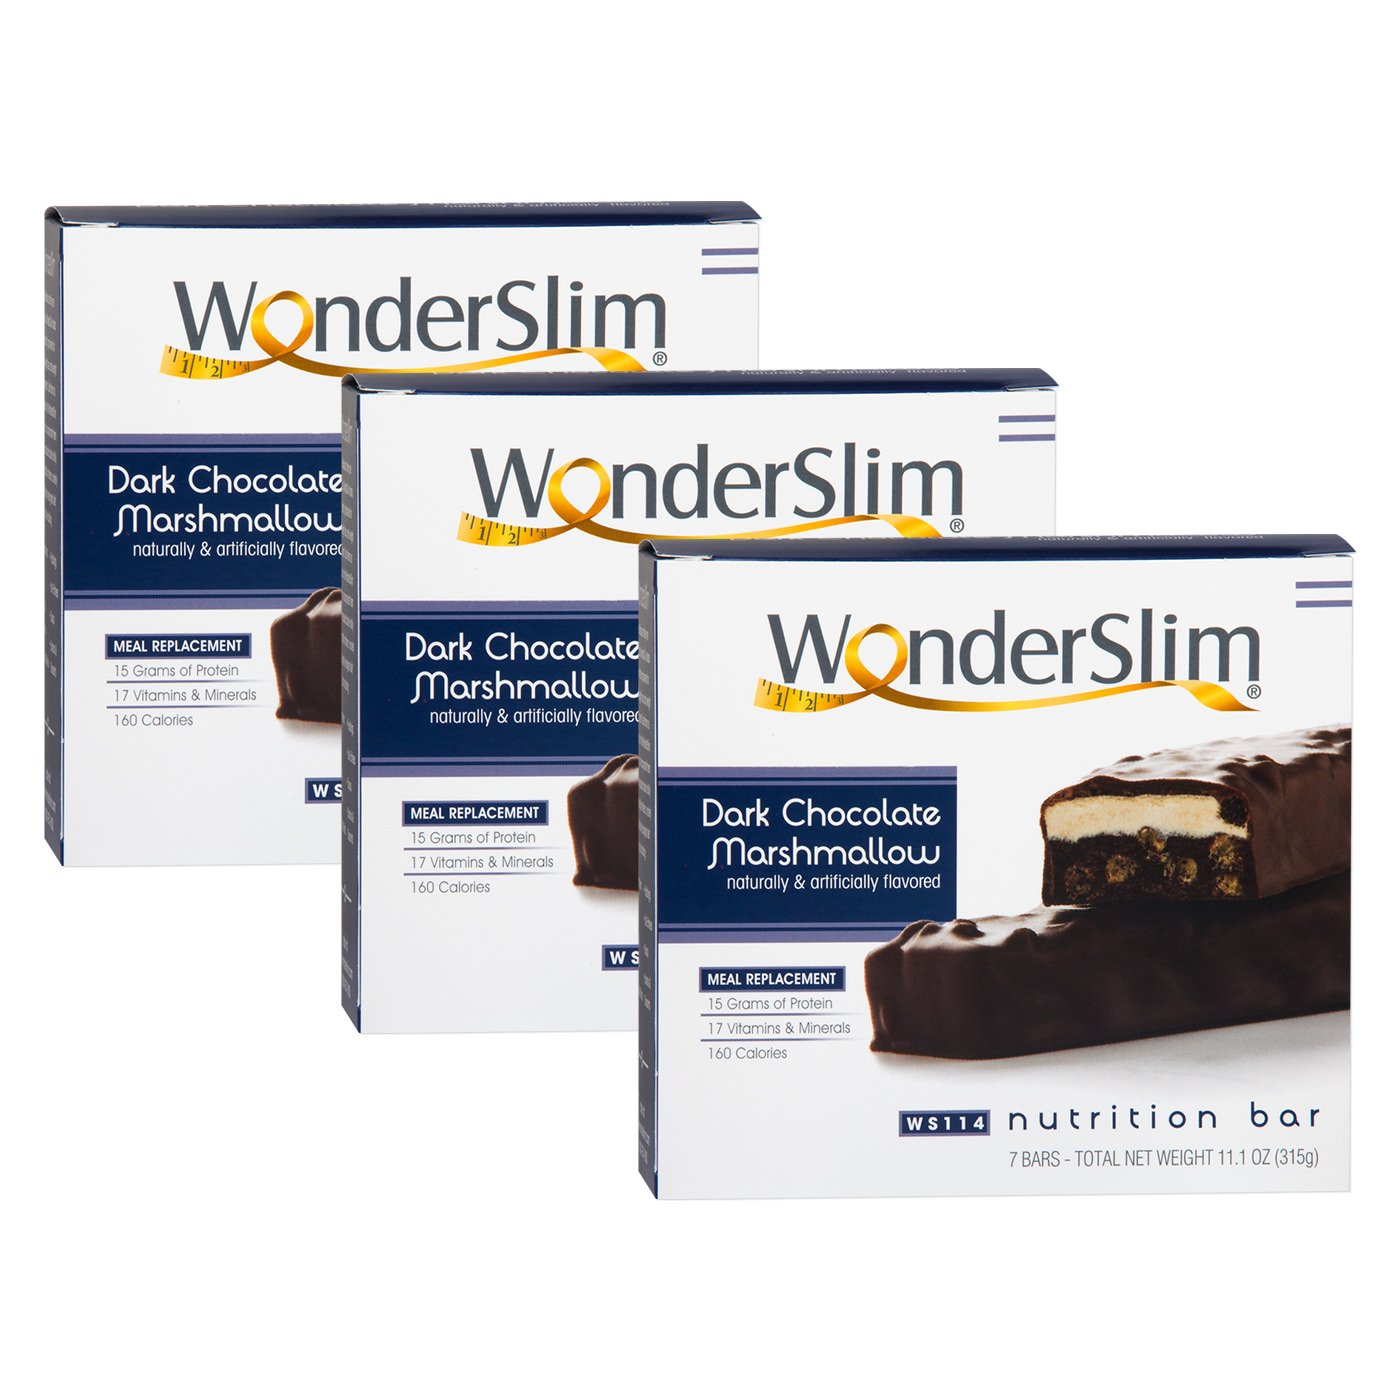 WonderSlim High Protein Meal Replacement Bar - High Fiber, Kosher, Choco Marshmallow - 3 Box Value-Pack (Save 5%)